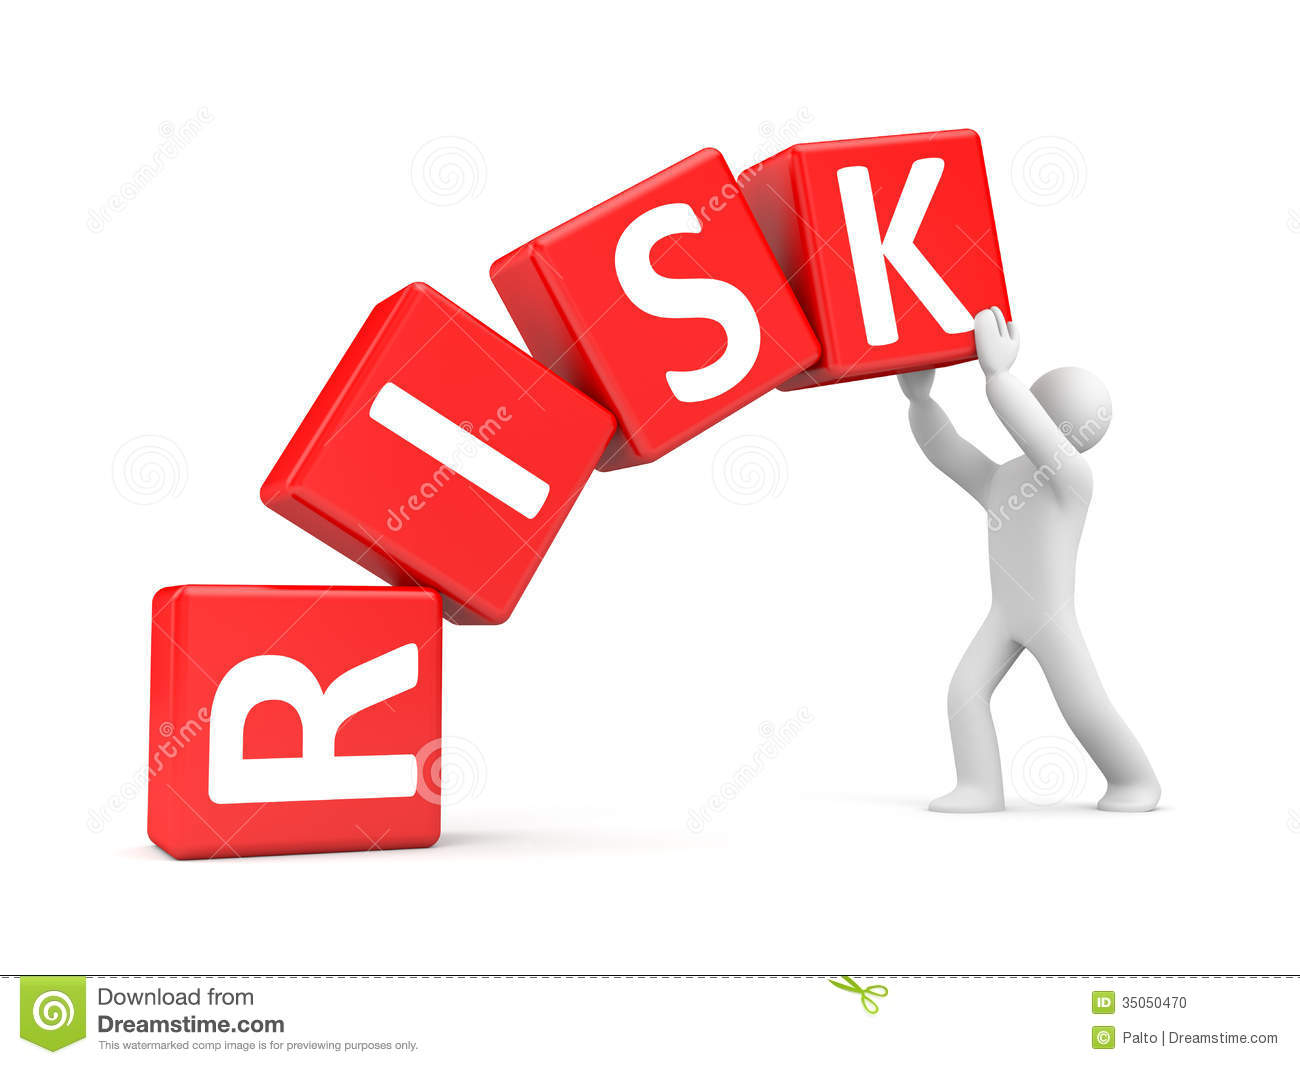 how to choose risk free rate